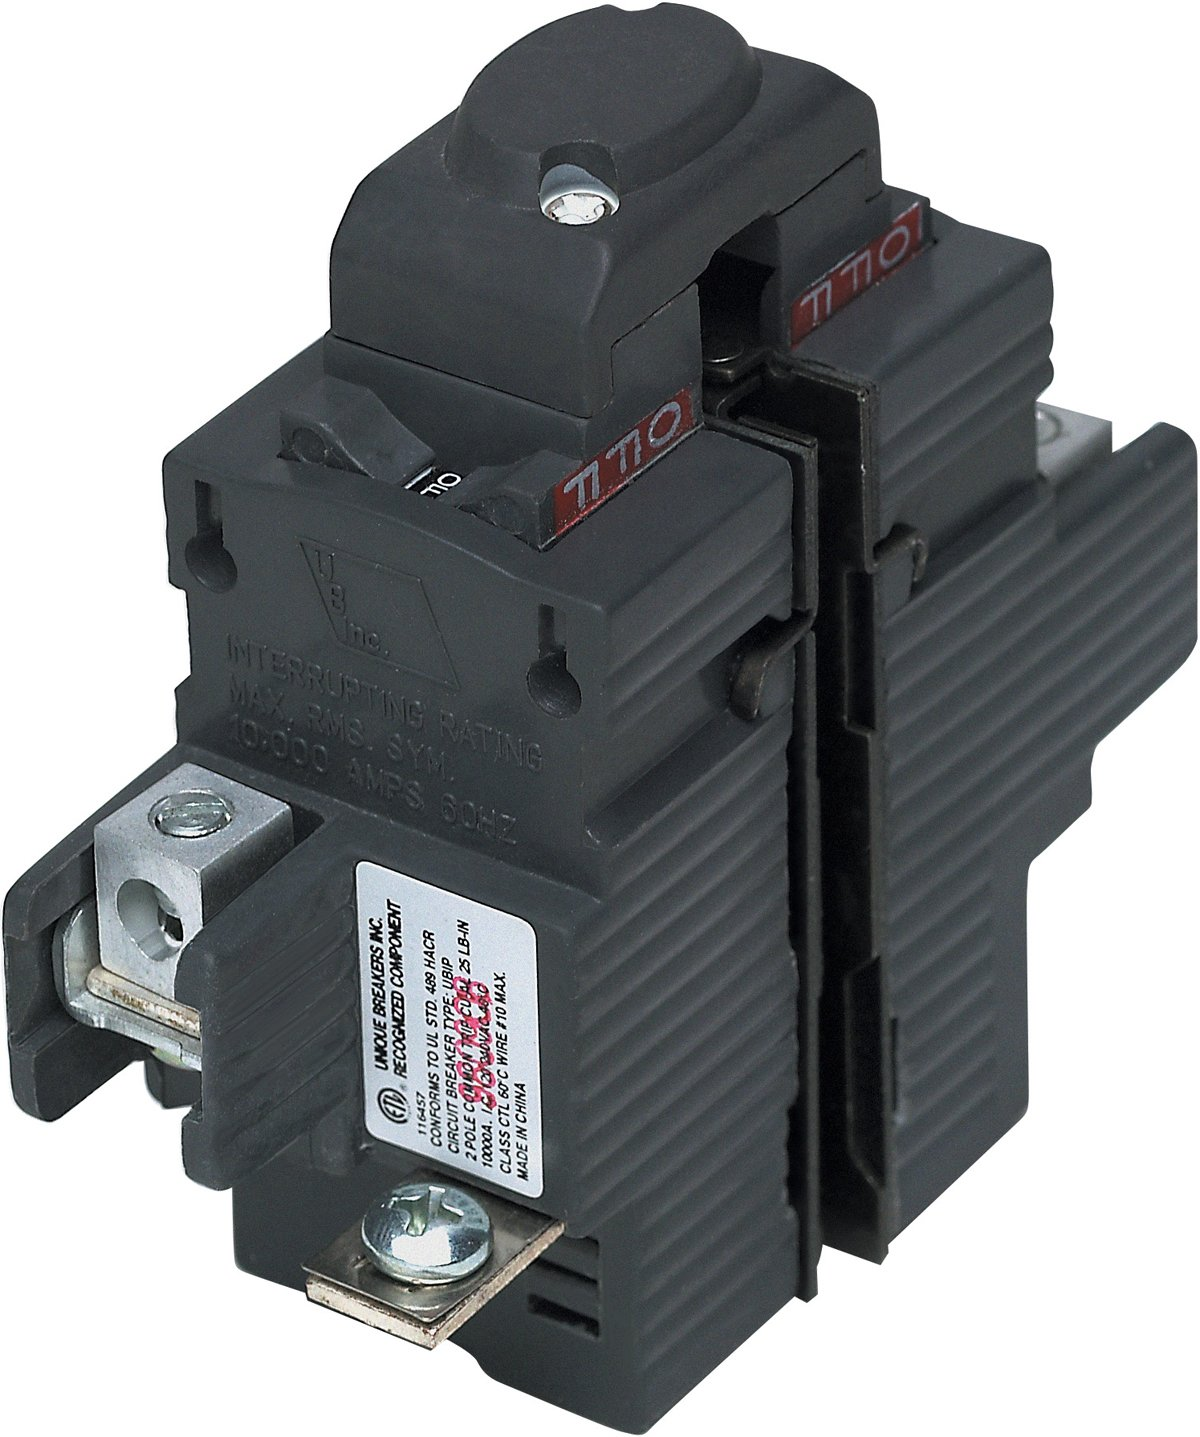 UBIP2100-New Pushmatic P2100 Replacement. Two Pole 100 Amp Circuit Breaker Manufactured by Connecticut Electric. by Connecticut Electric